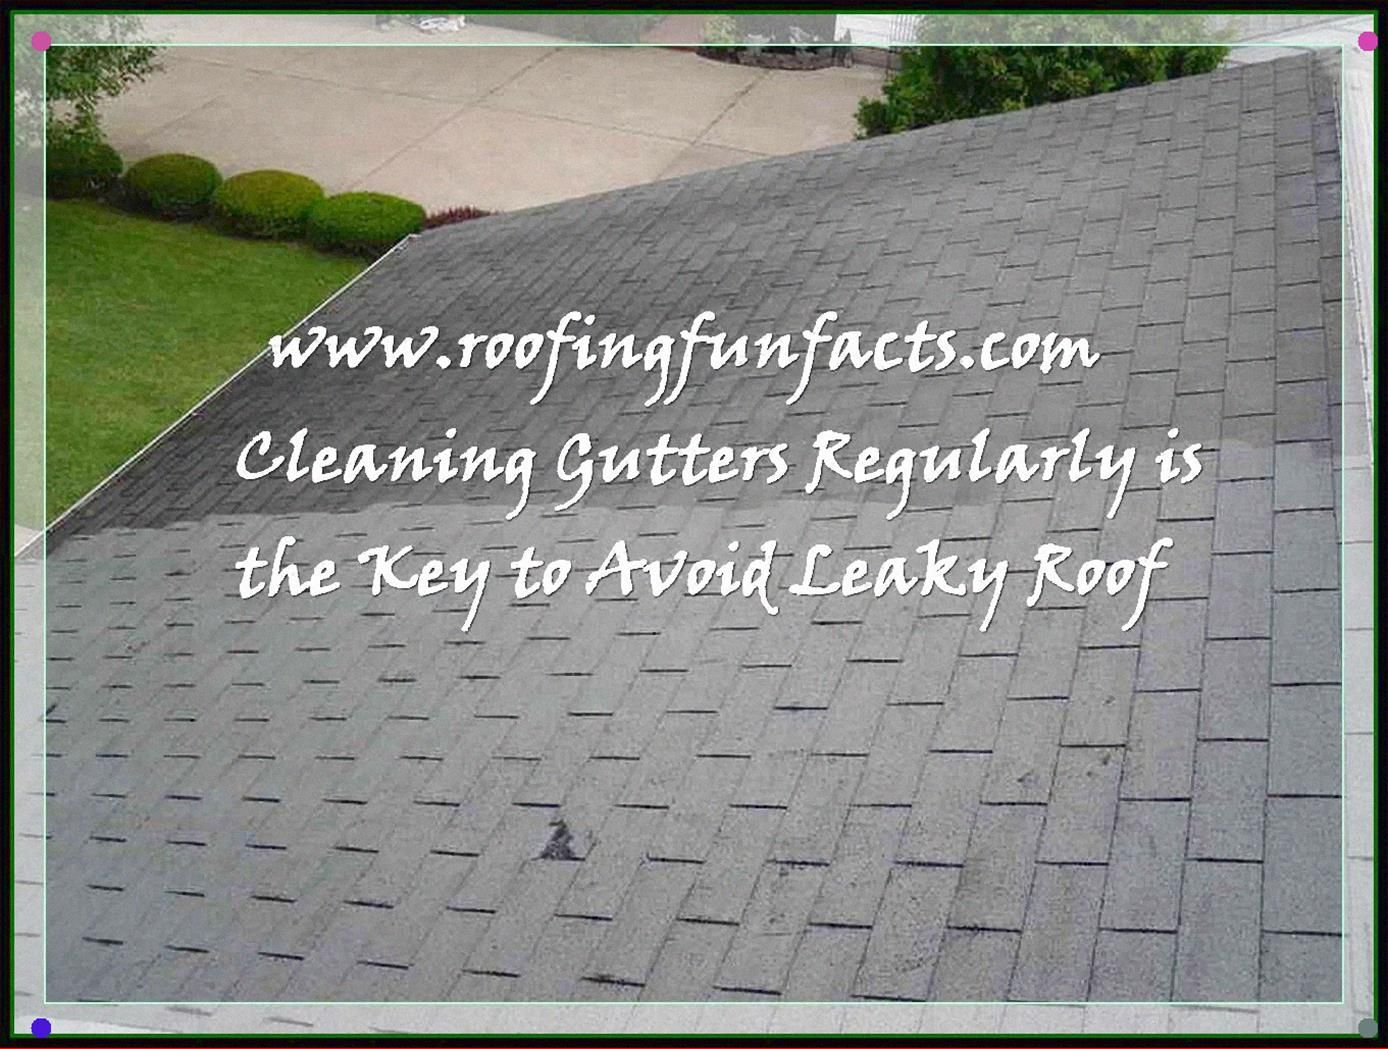 Fun Facts Of Roofing You Ought To Know Read More At The Image Link Rooftopgardeningfacts Rooftop Garden House Plant Care Gardening Techniques